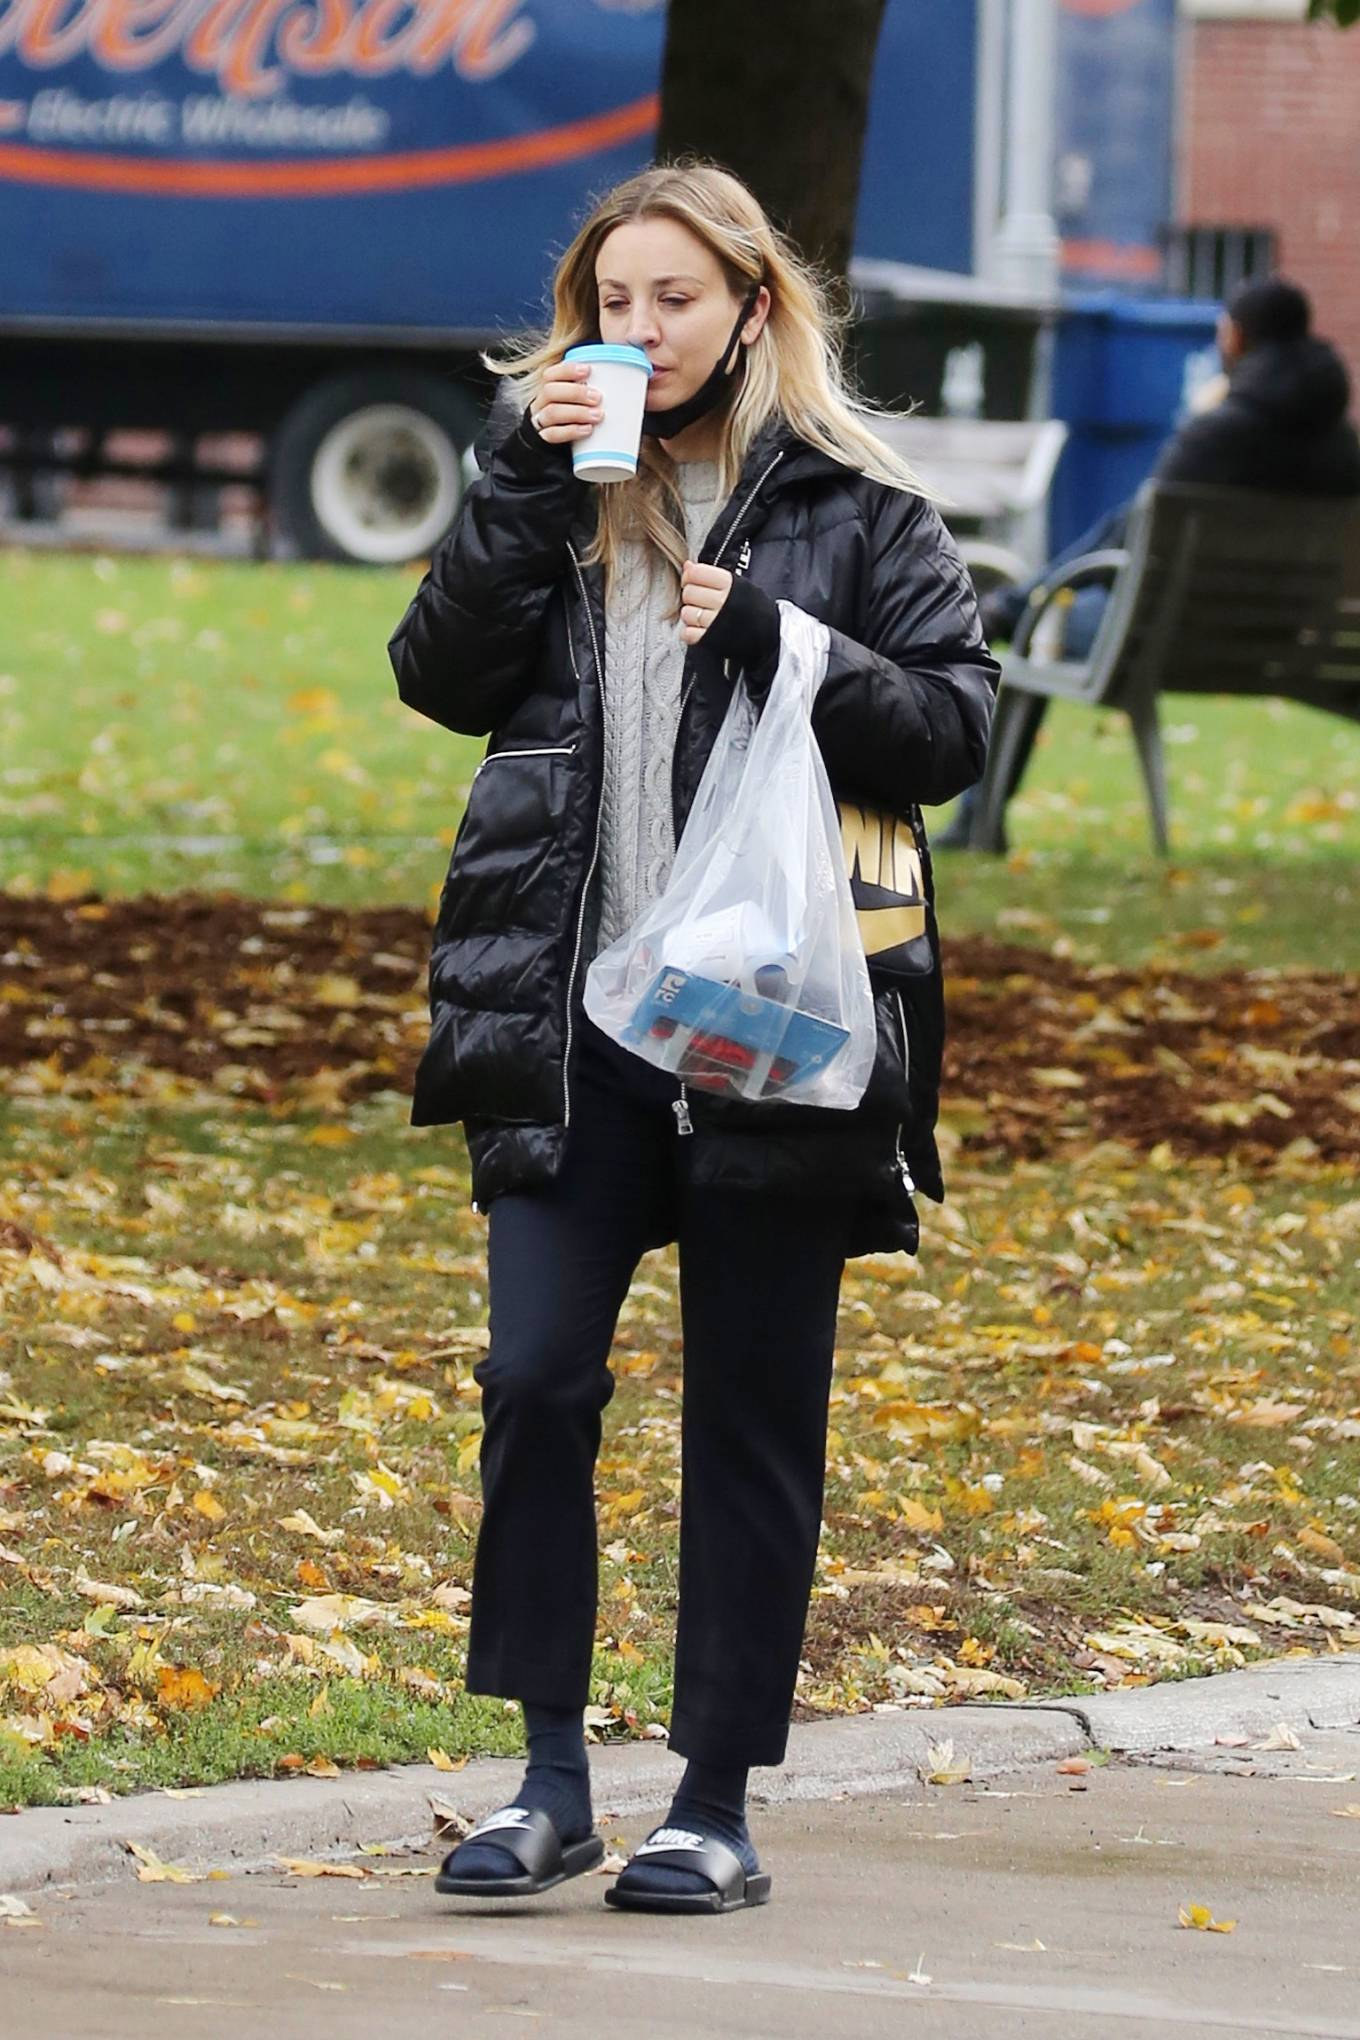 Kaley Cuoco 2020 : Kaley Cuoco – Spotted while out in Toronto-03